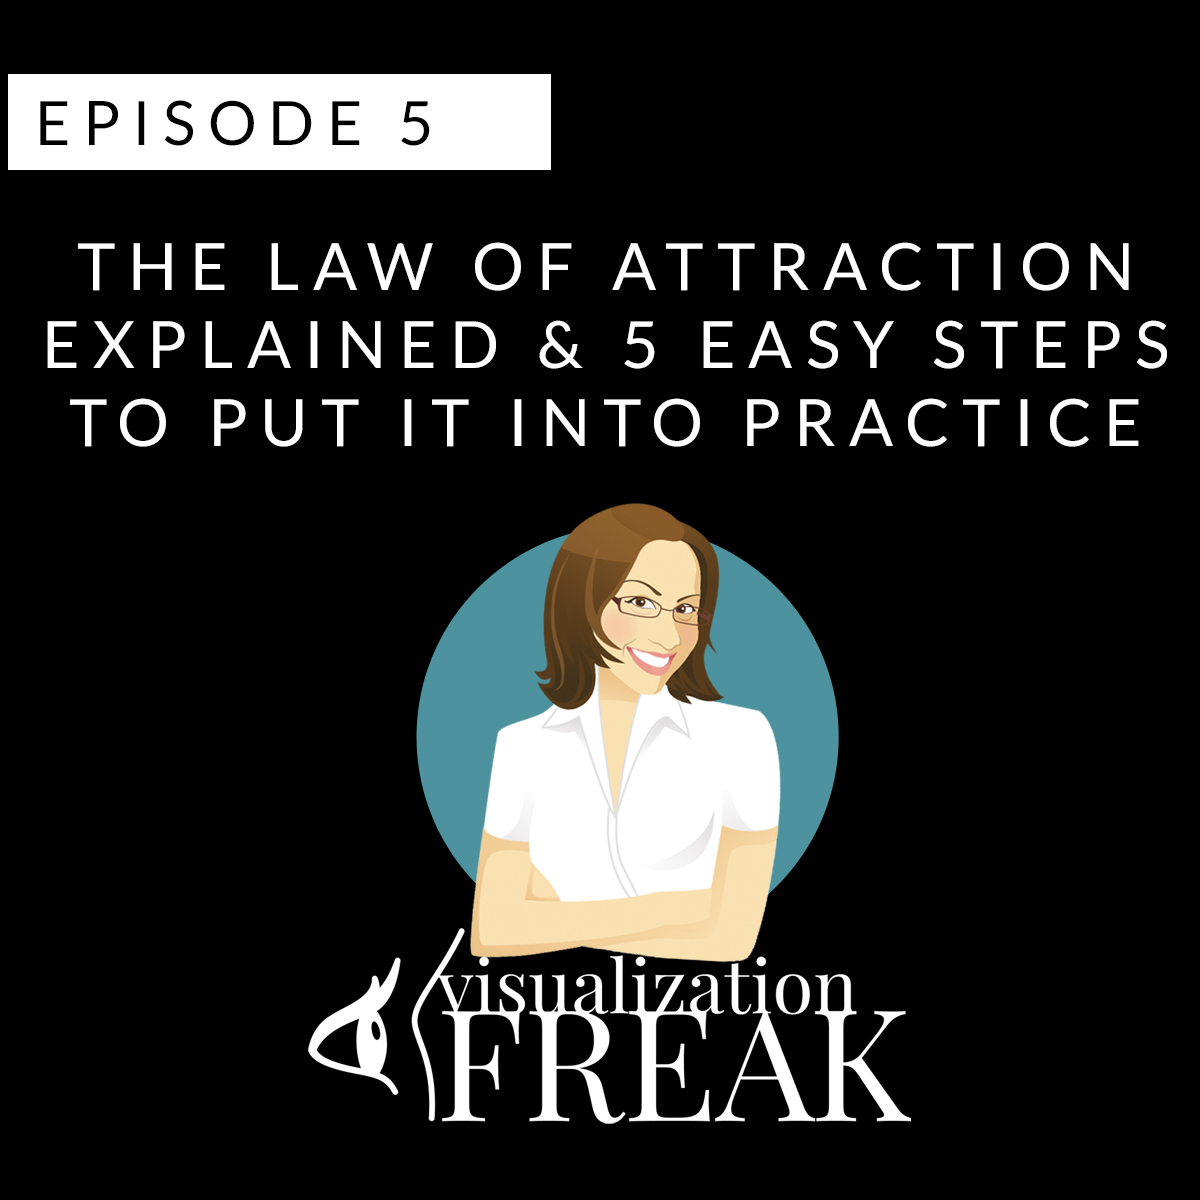 EPISODE 5: The Law of Attraction Explained & 5 Easy Steps to Put it Into Practice